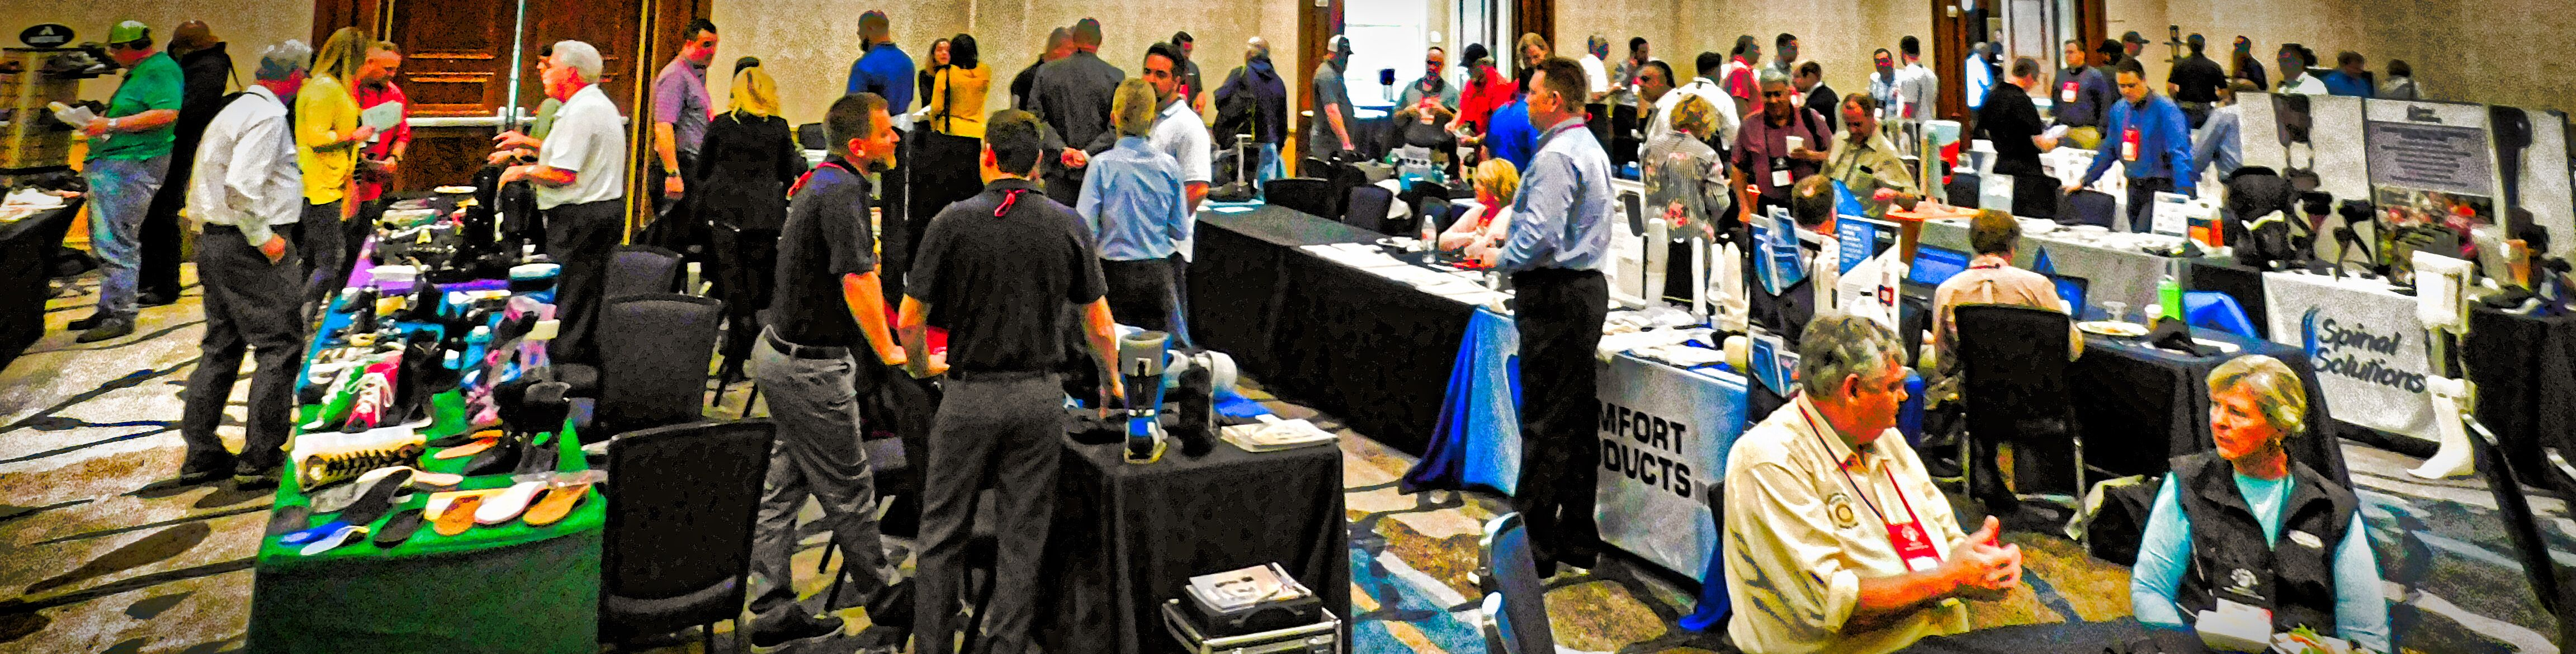 TAOP 2019 - Exhibit Hall